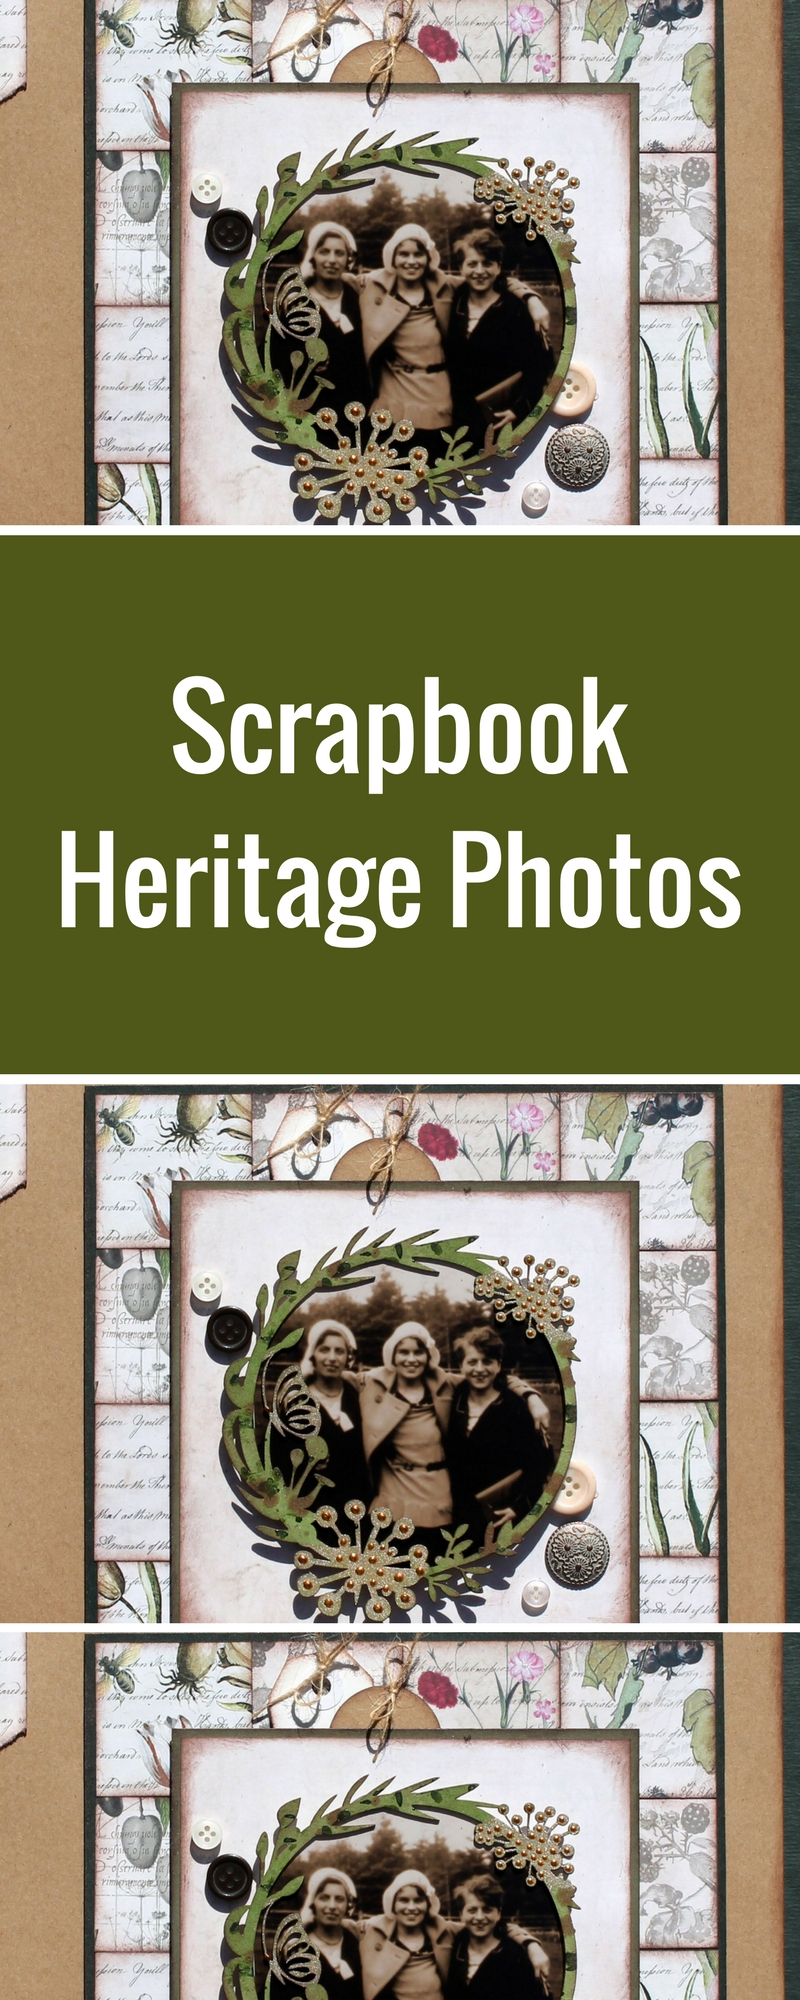 Heritage Scrapbook Layout | Featurring FabScraps Mother Earth Collection | Designed by Tracy McLennon | Creative Scrapbooker Magazine #heritage #scrapbooking #12X12layout #fabscraps